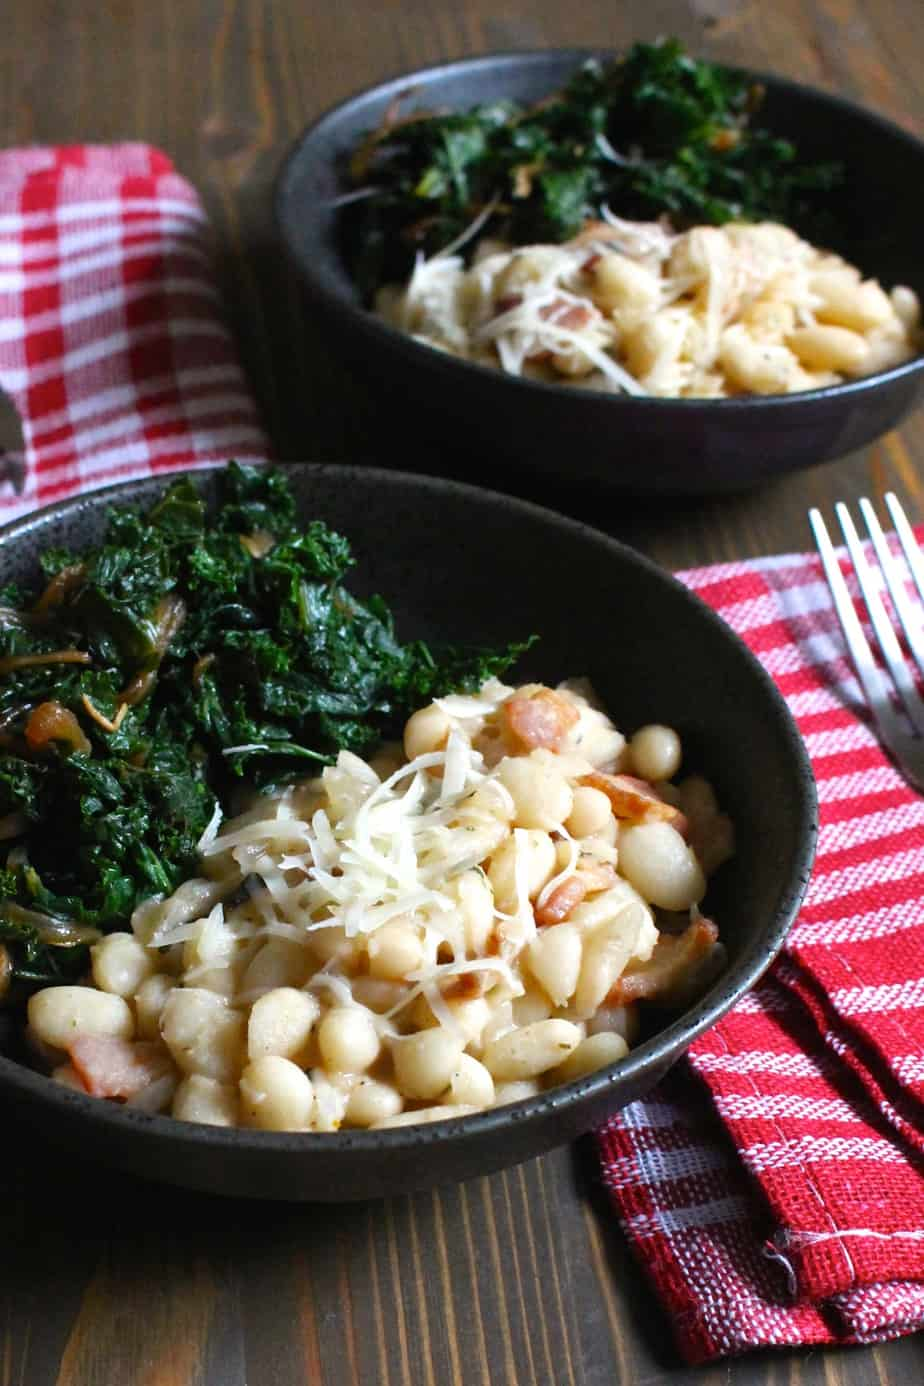 Creamy Italian White Beans with Bacon - serve with caramelized onions and kale | Frugal Nutrition